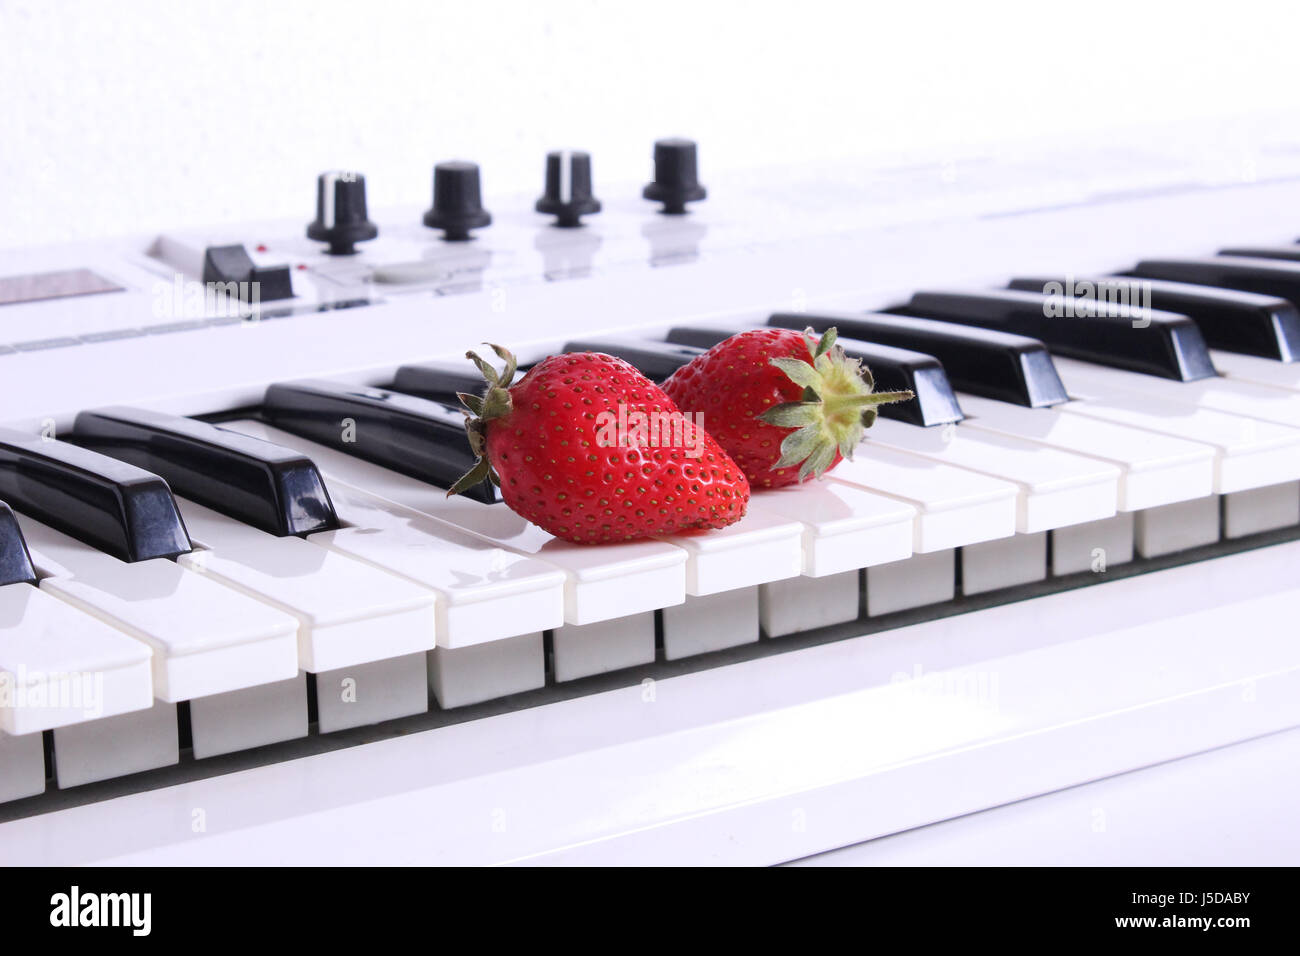 Synthesizer and strawberries - Stock Image